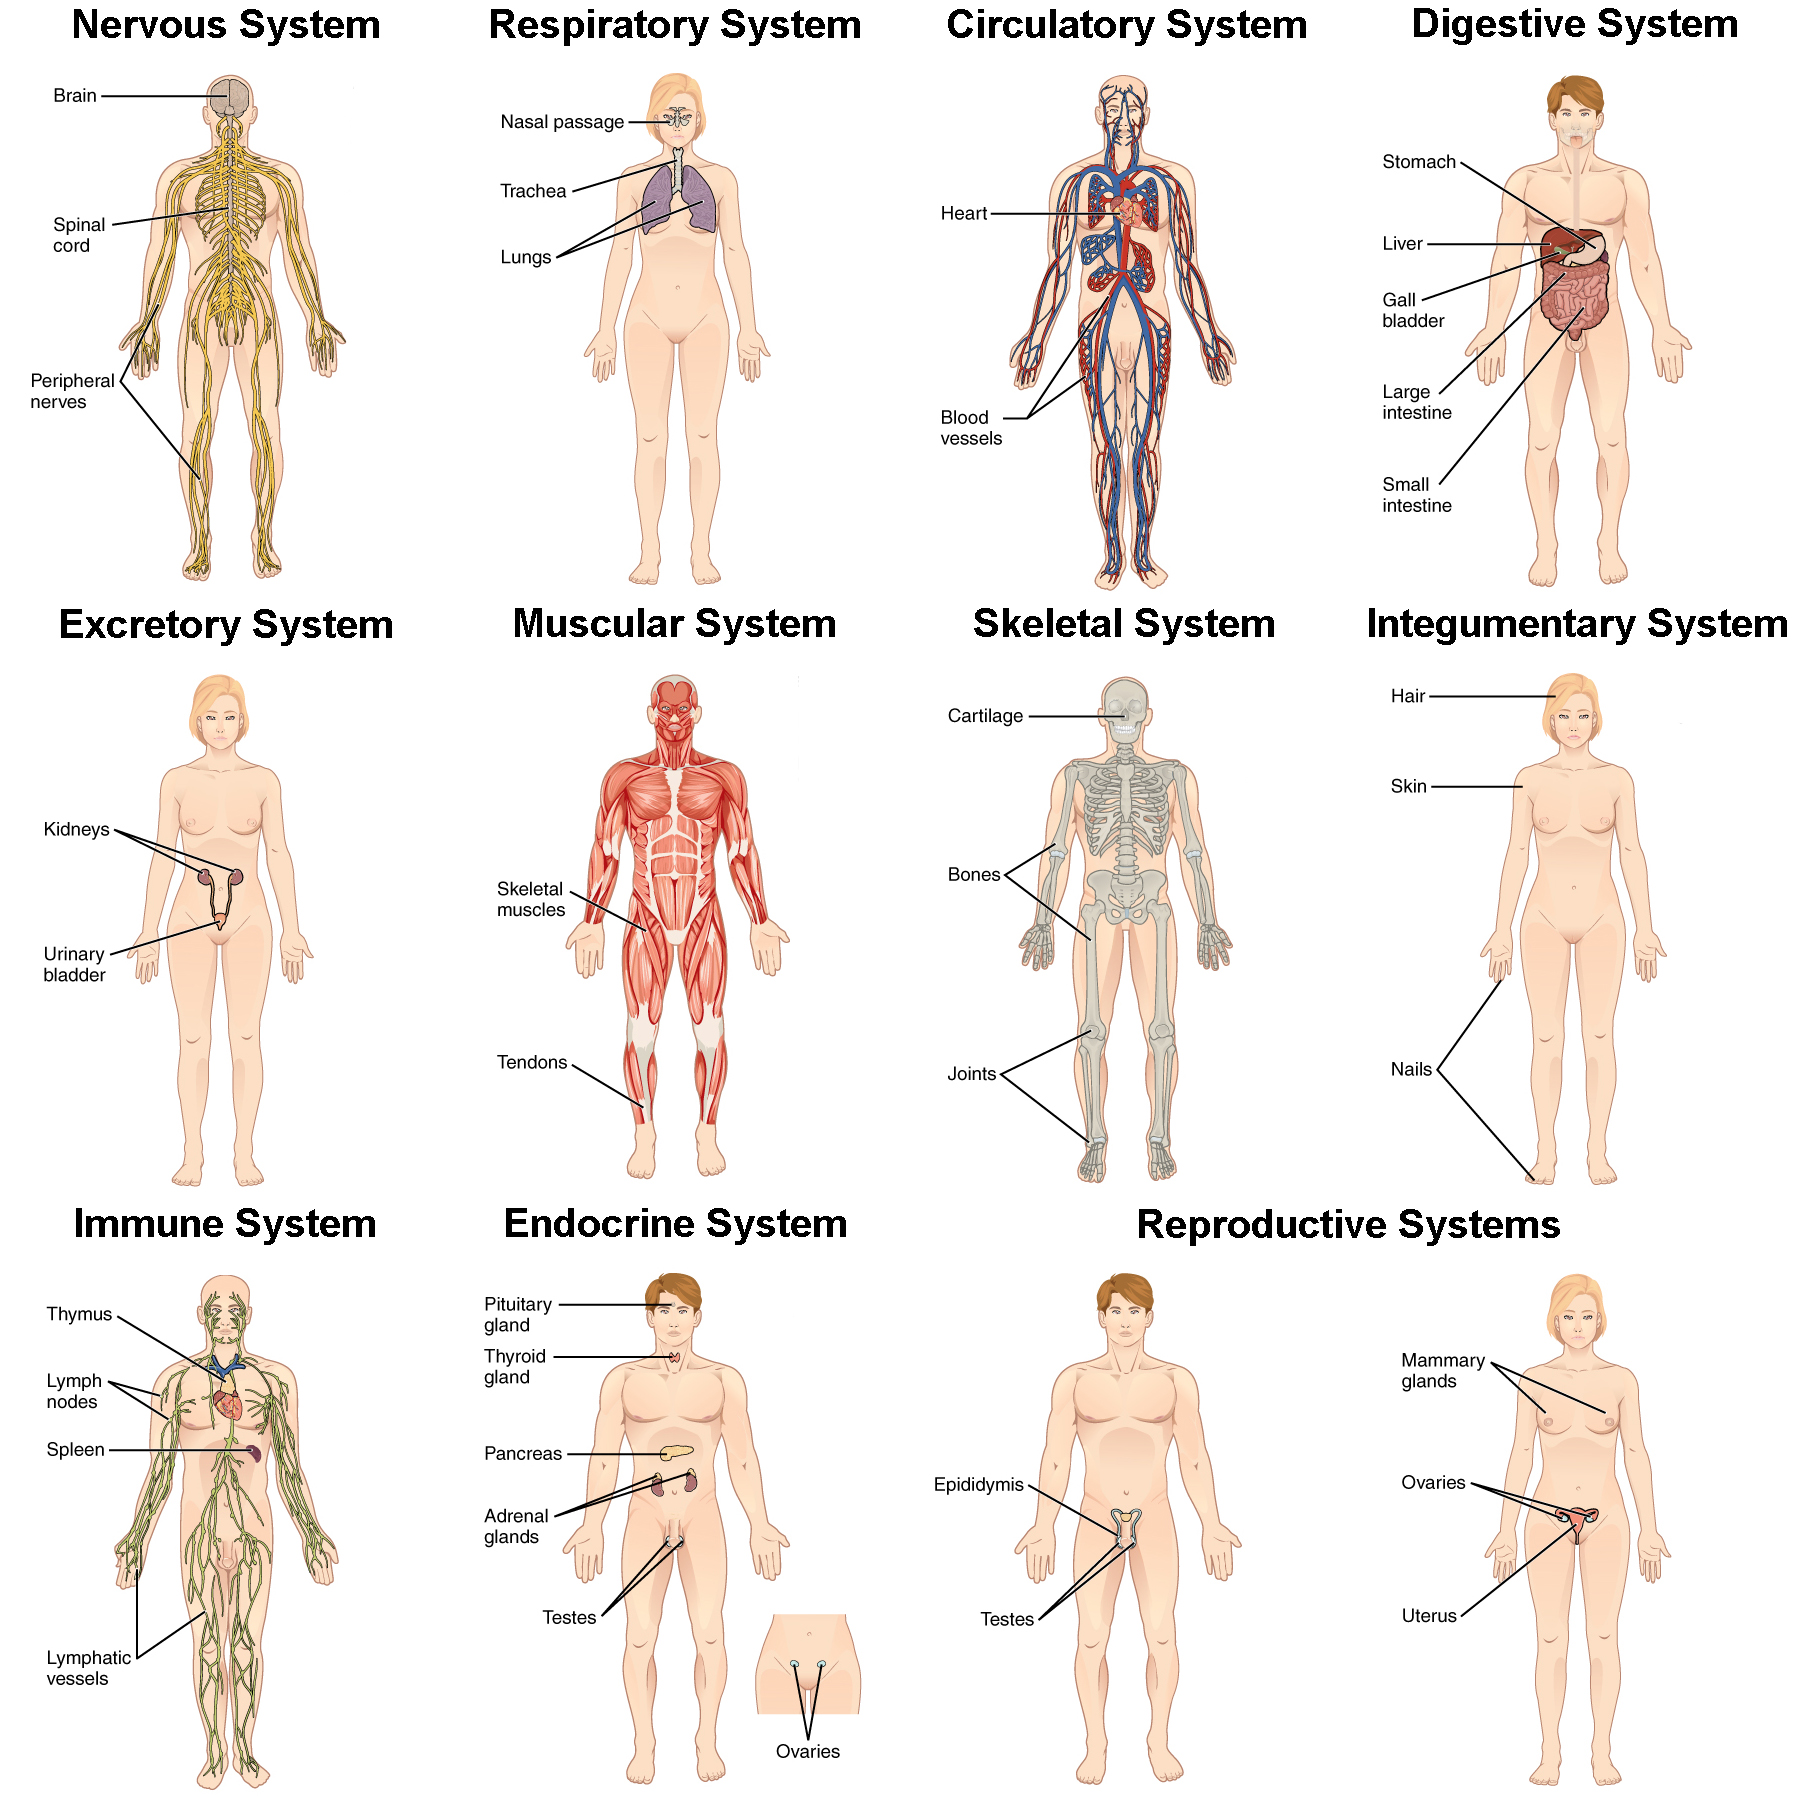 Integration of Systems | Biology for Majors II